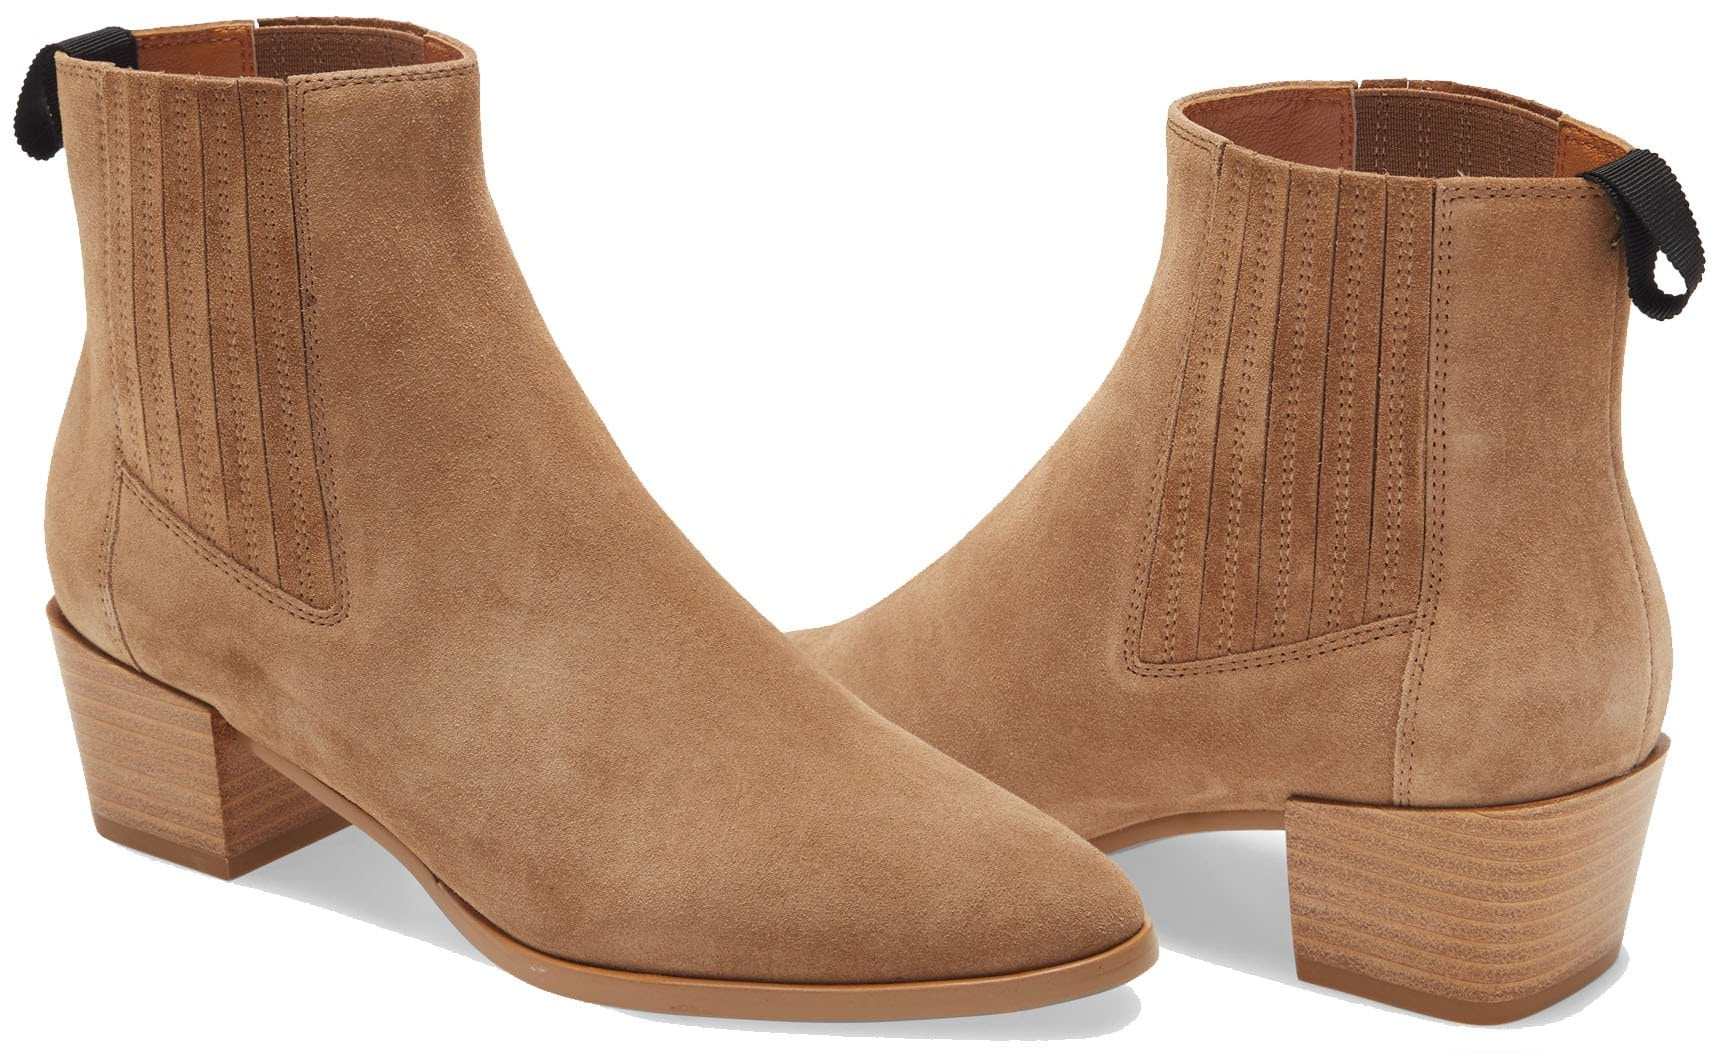 The Rover boots feature almond toes, covered elastic goring, and chunky stacked heels